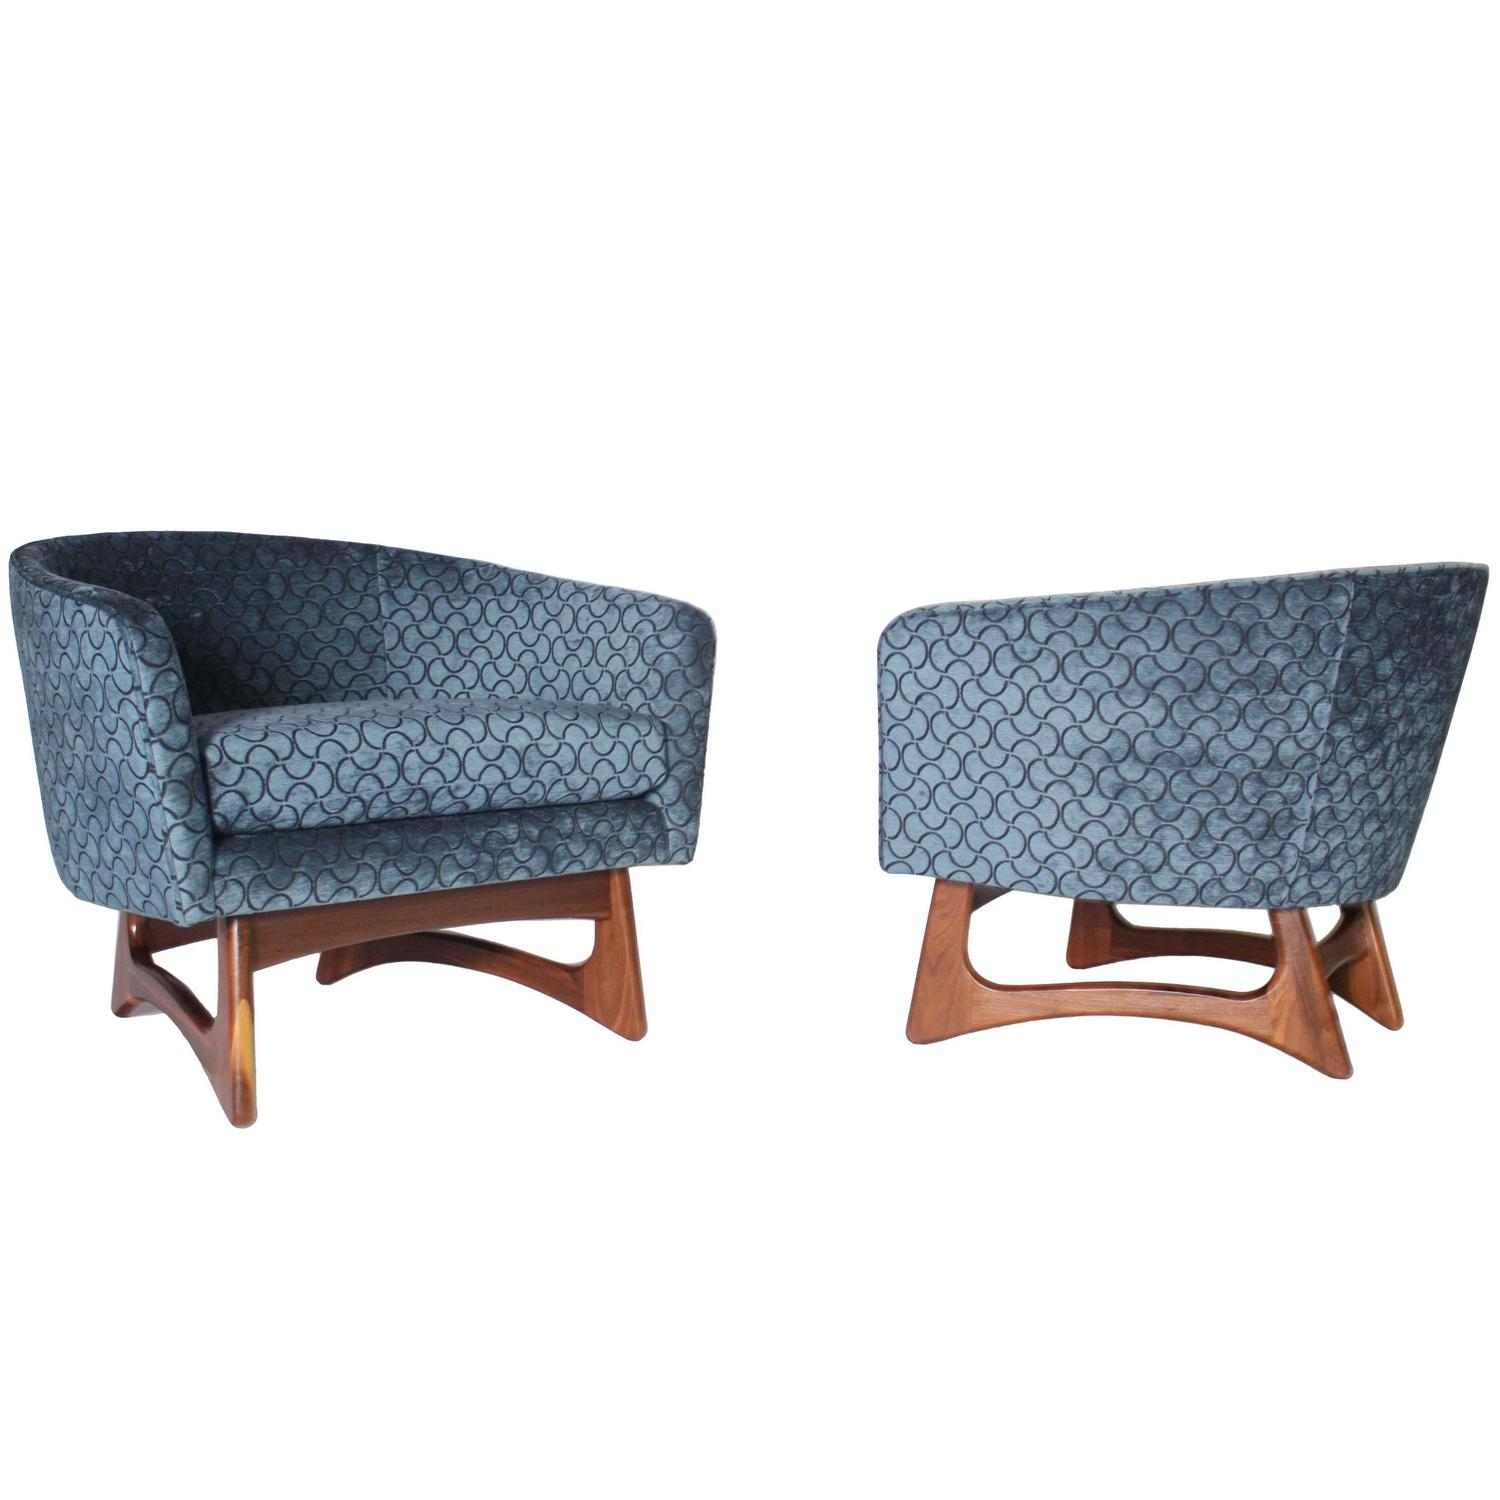 adrian pearsall chair baxton studio reviews wide barrel club chairs at 1stdibs